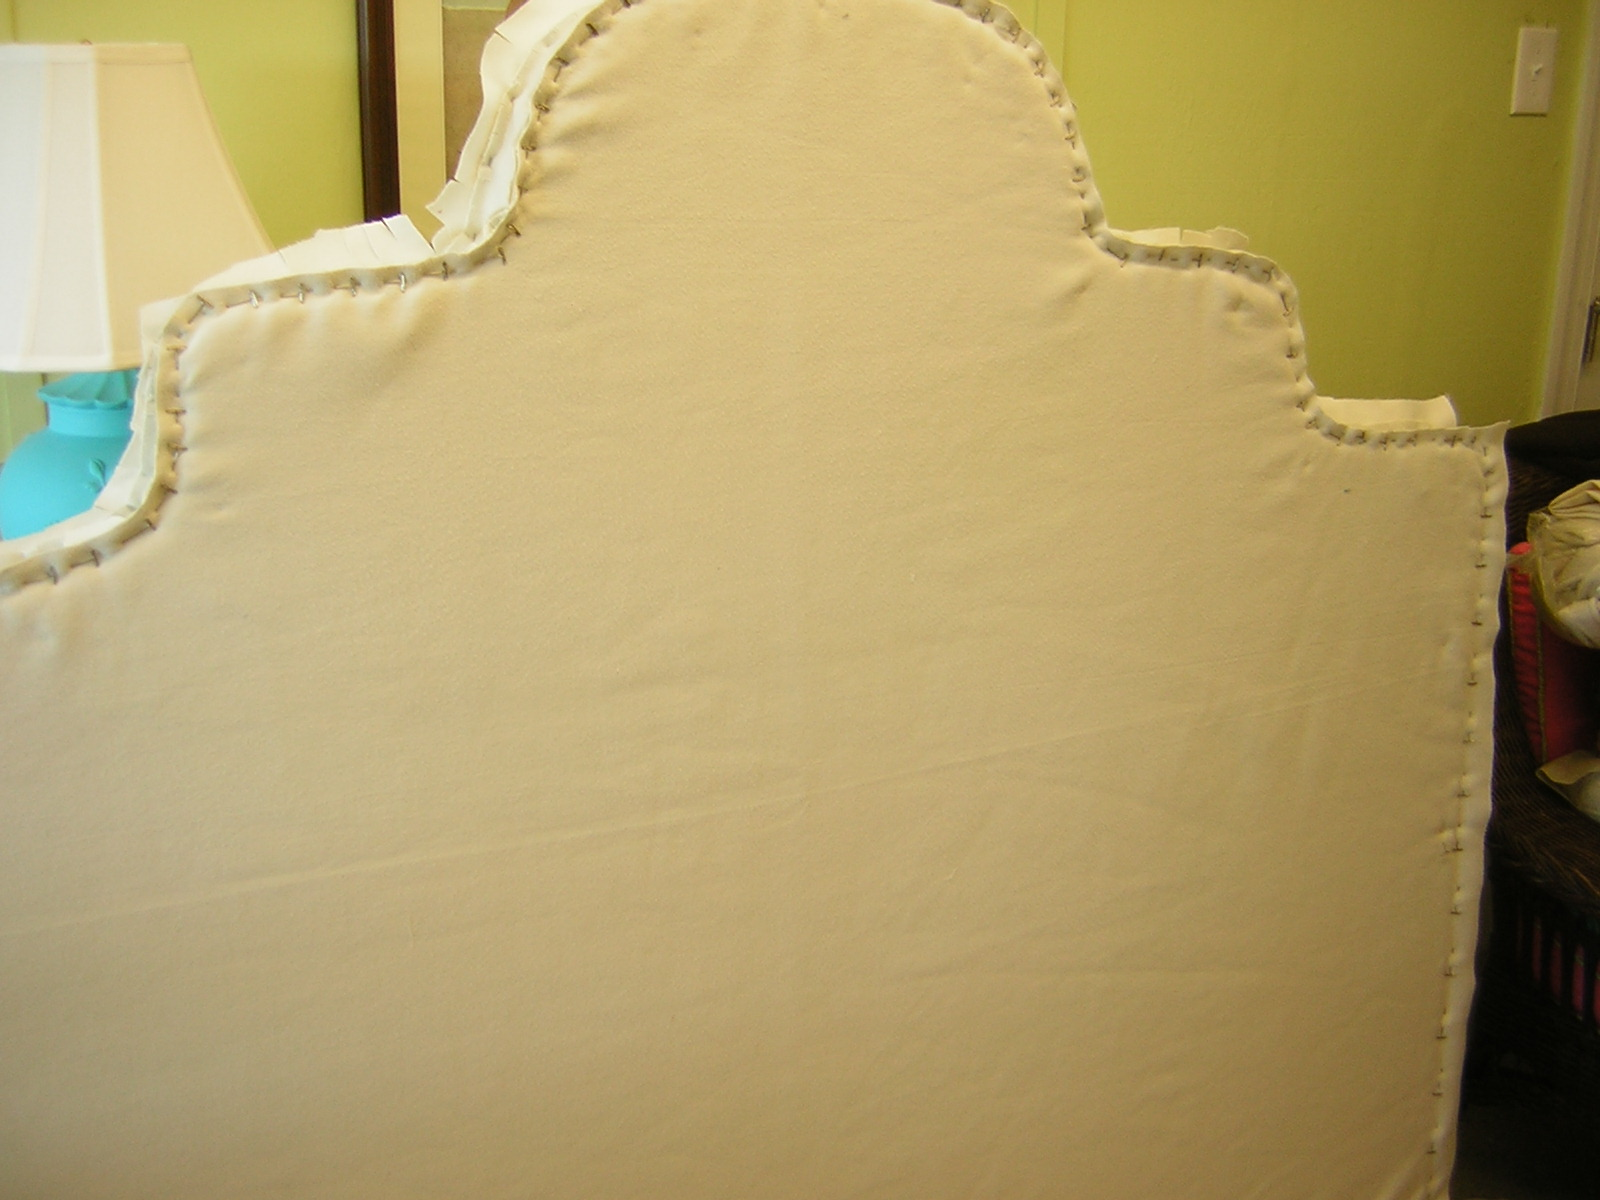 easily camera on i that chic slipcovered headboard dump and slipped in wilmington prewashed with slipcover nc made the was off a be then so purchased march zipper from artee it could fabric